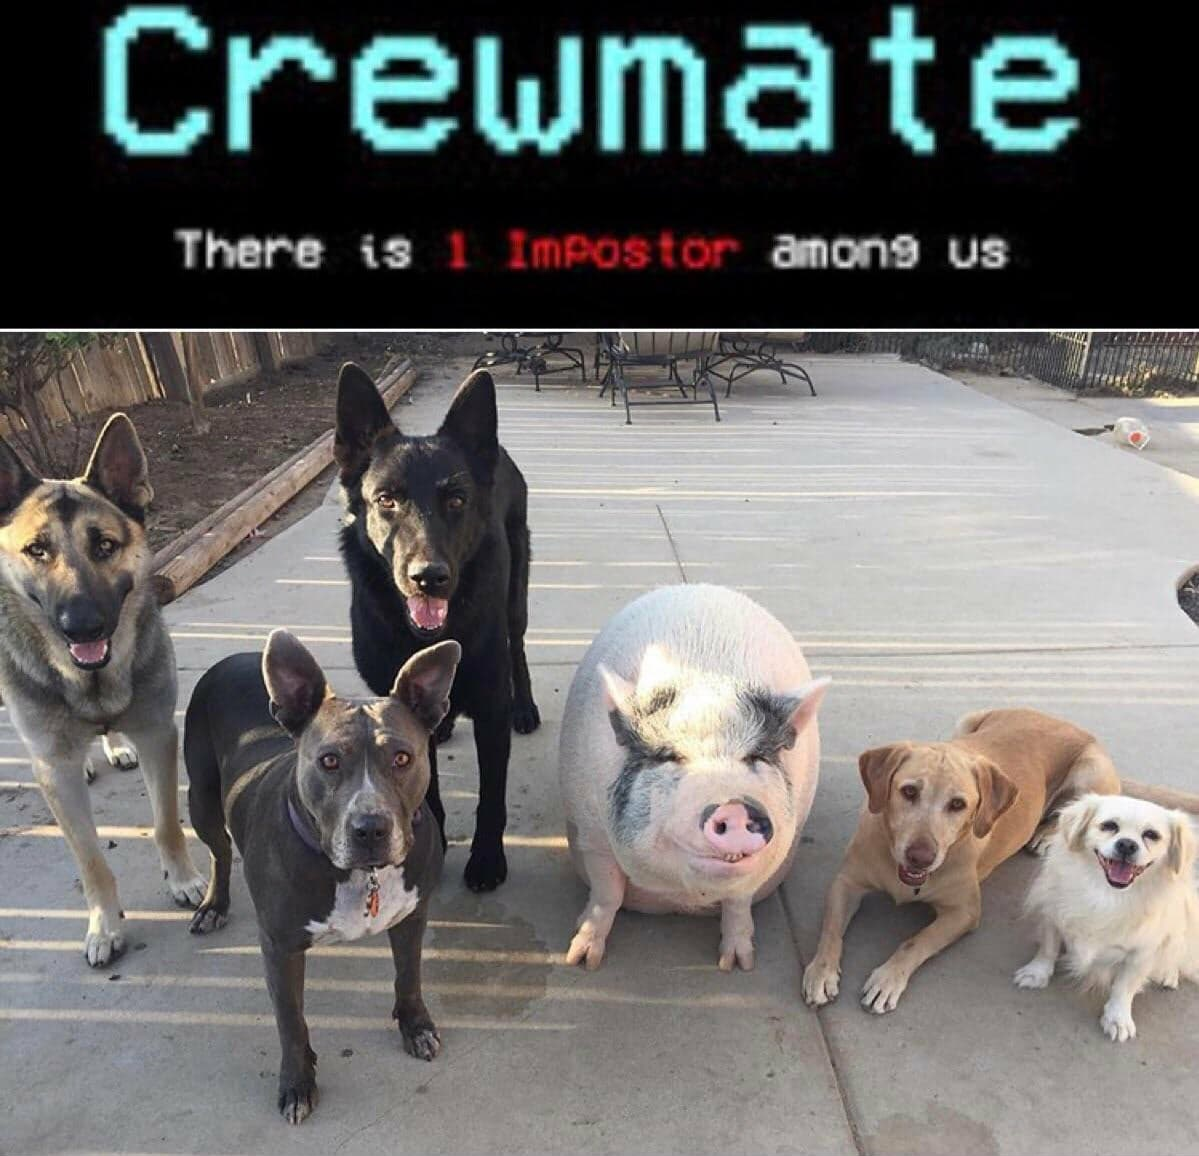 among-us-meme-011-there-is-1-imposter-pig-with-dogs ...